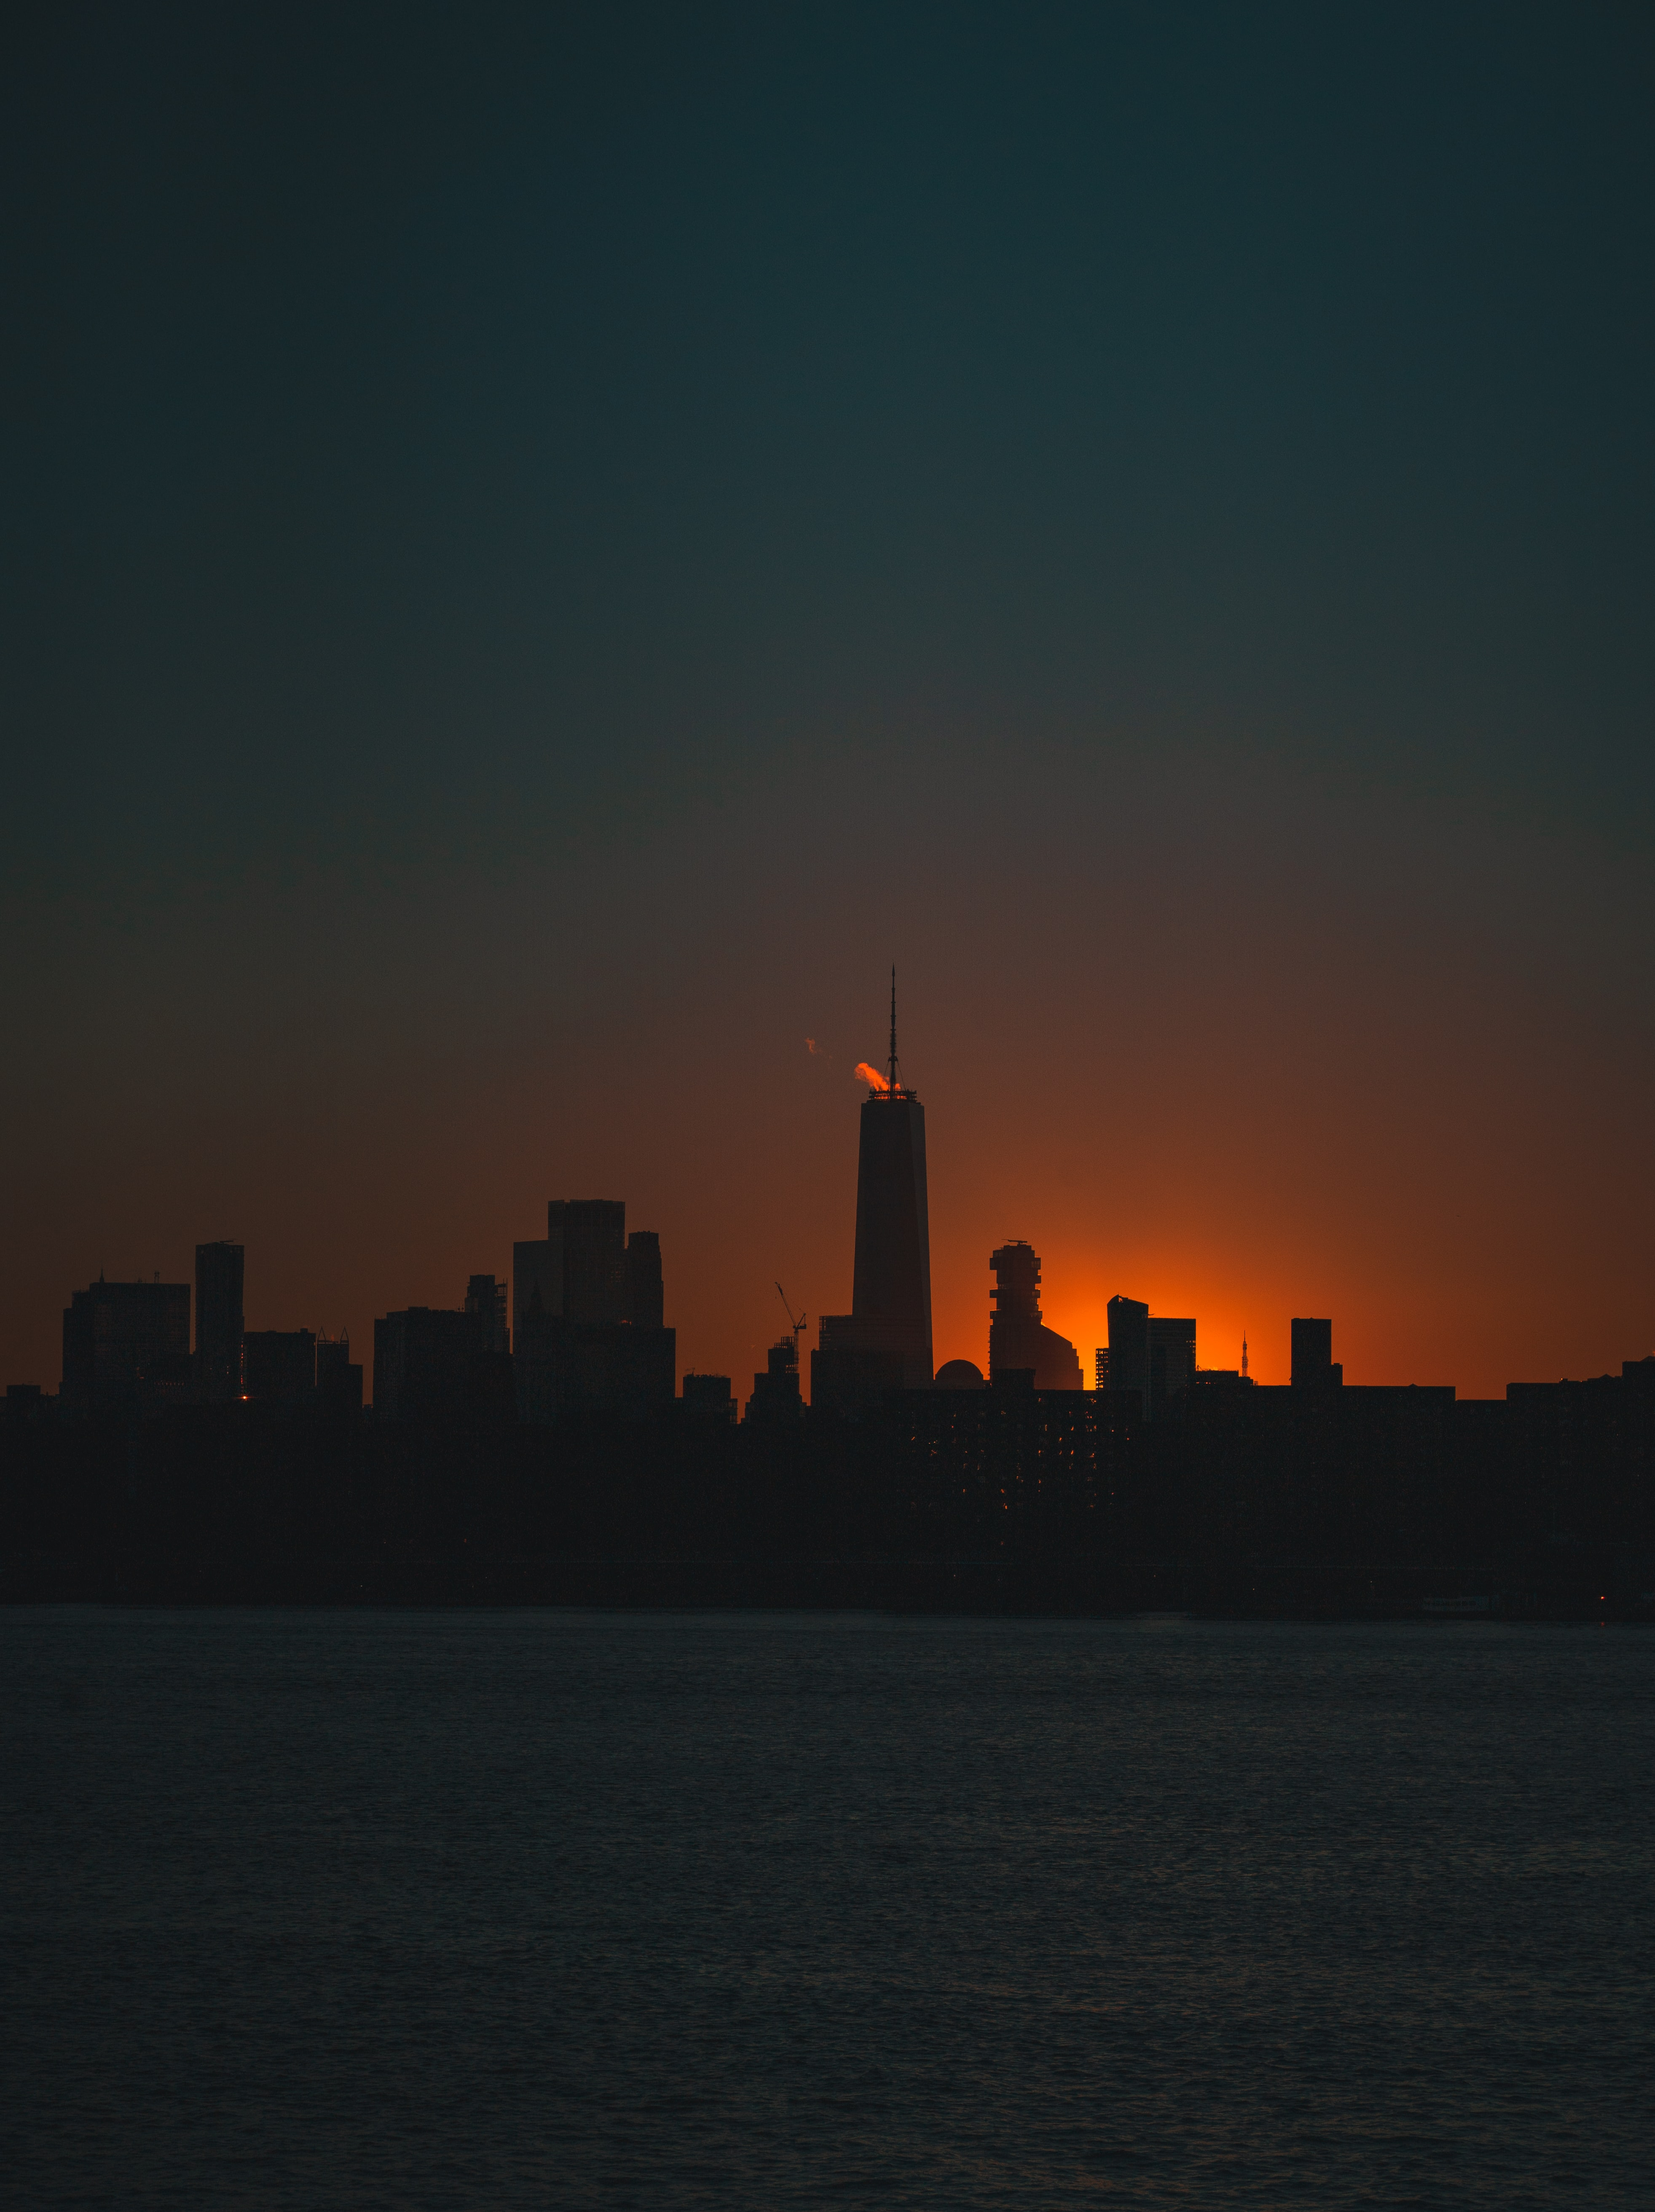 103957 free wallpaper 320x480 for phone, download images Dark, Sunset, City, Building, Silhouettes 320x480 for mobile